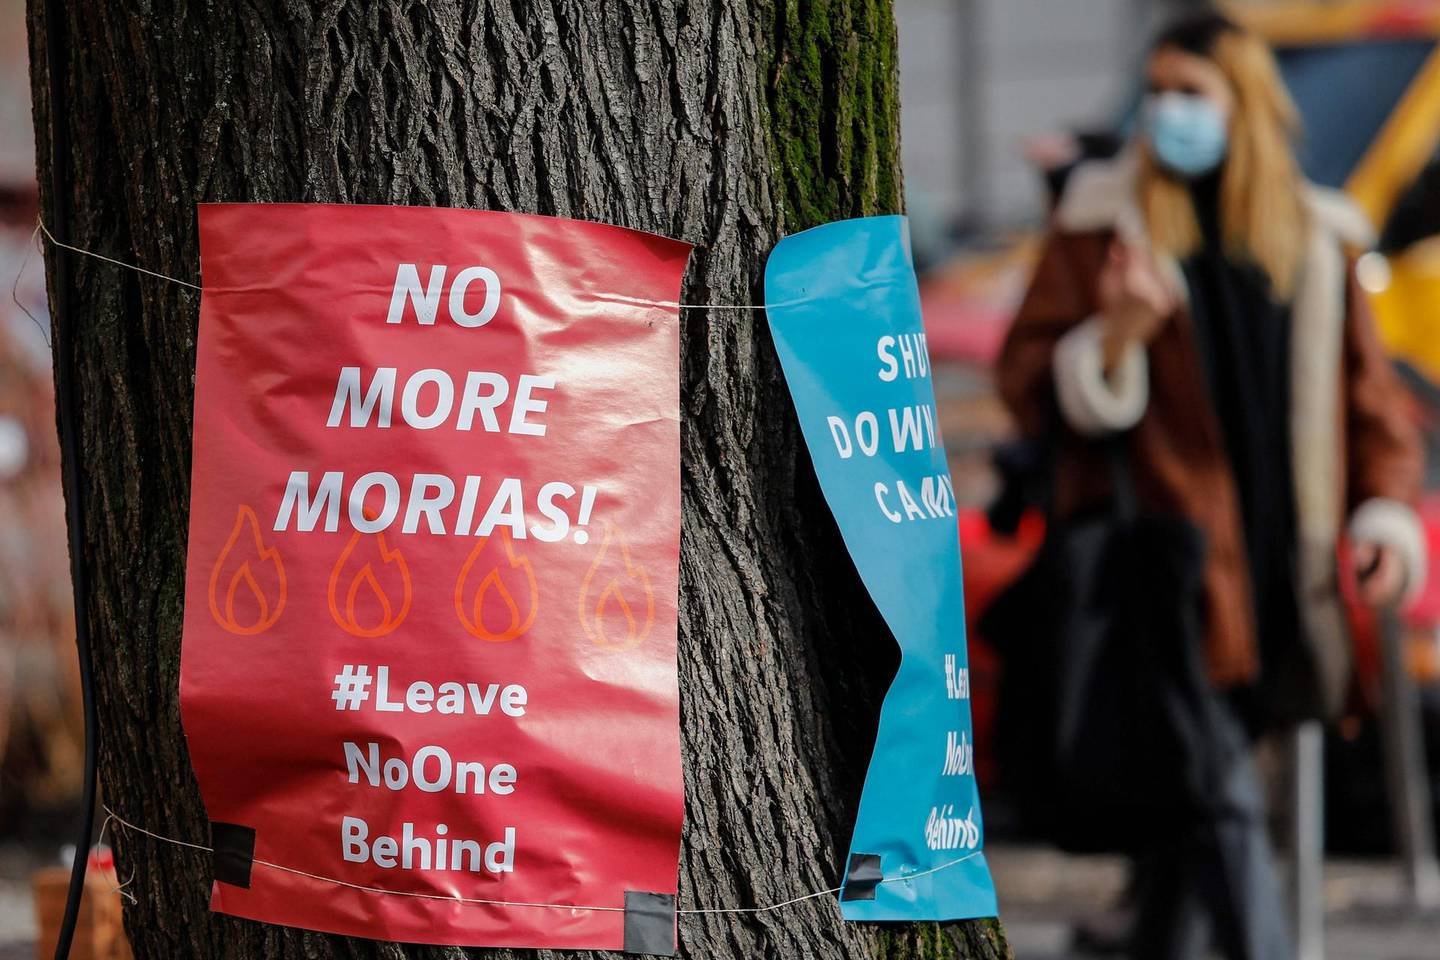 """Posters calling for """"No more Morias"""" referring to the Moria refugee camp on the Greek island of Lesbos which burned down, are hung on a tree on February 18, 2021 in Berlin's Kreuzberg district.  Lesbos' squalid Moria migrant camp was ravaged by two fires in September. It has since been replaced by a hastily-erected temporary encampment in an area prone to flooding and strong winds. Aid groups have denounced the poor conditions and the lack of infrastructure on the site, while media outlets have complained that they are banned from entering.  / AFP / David GANNON"""